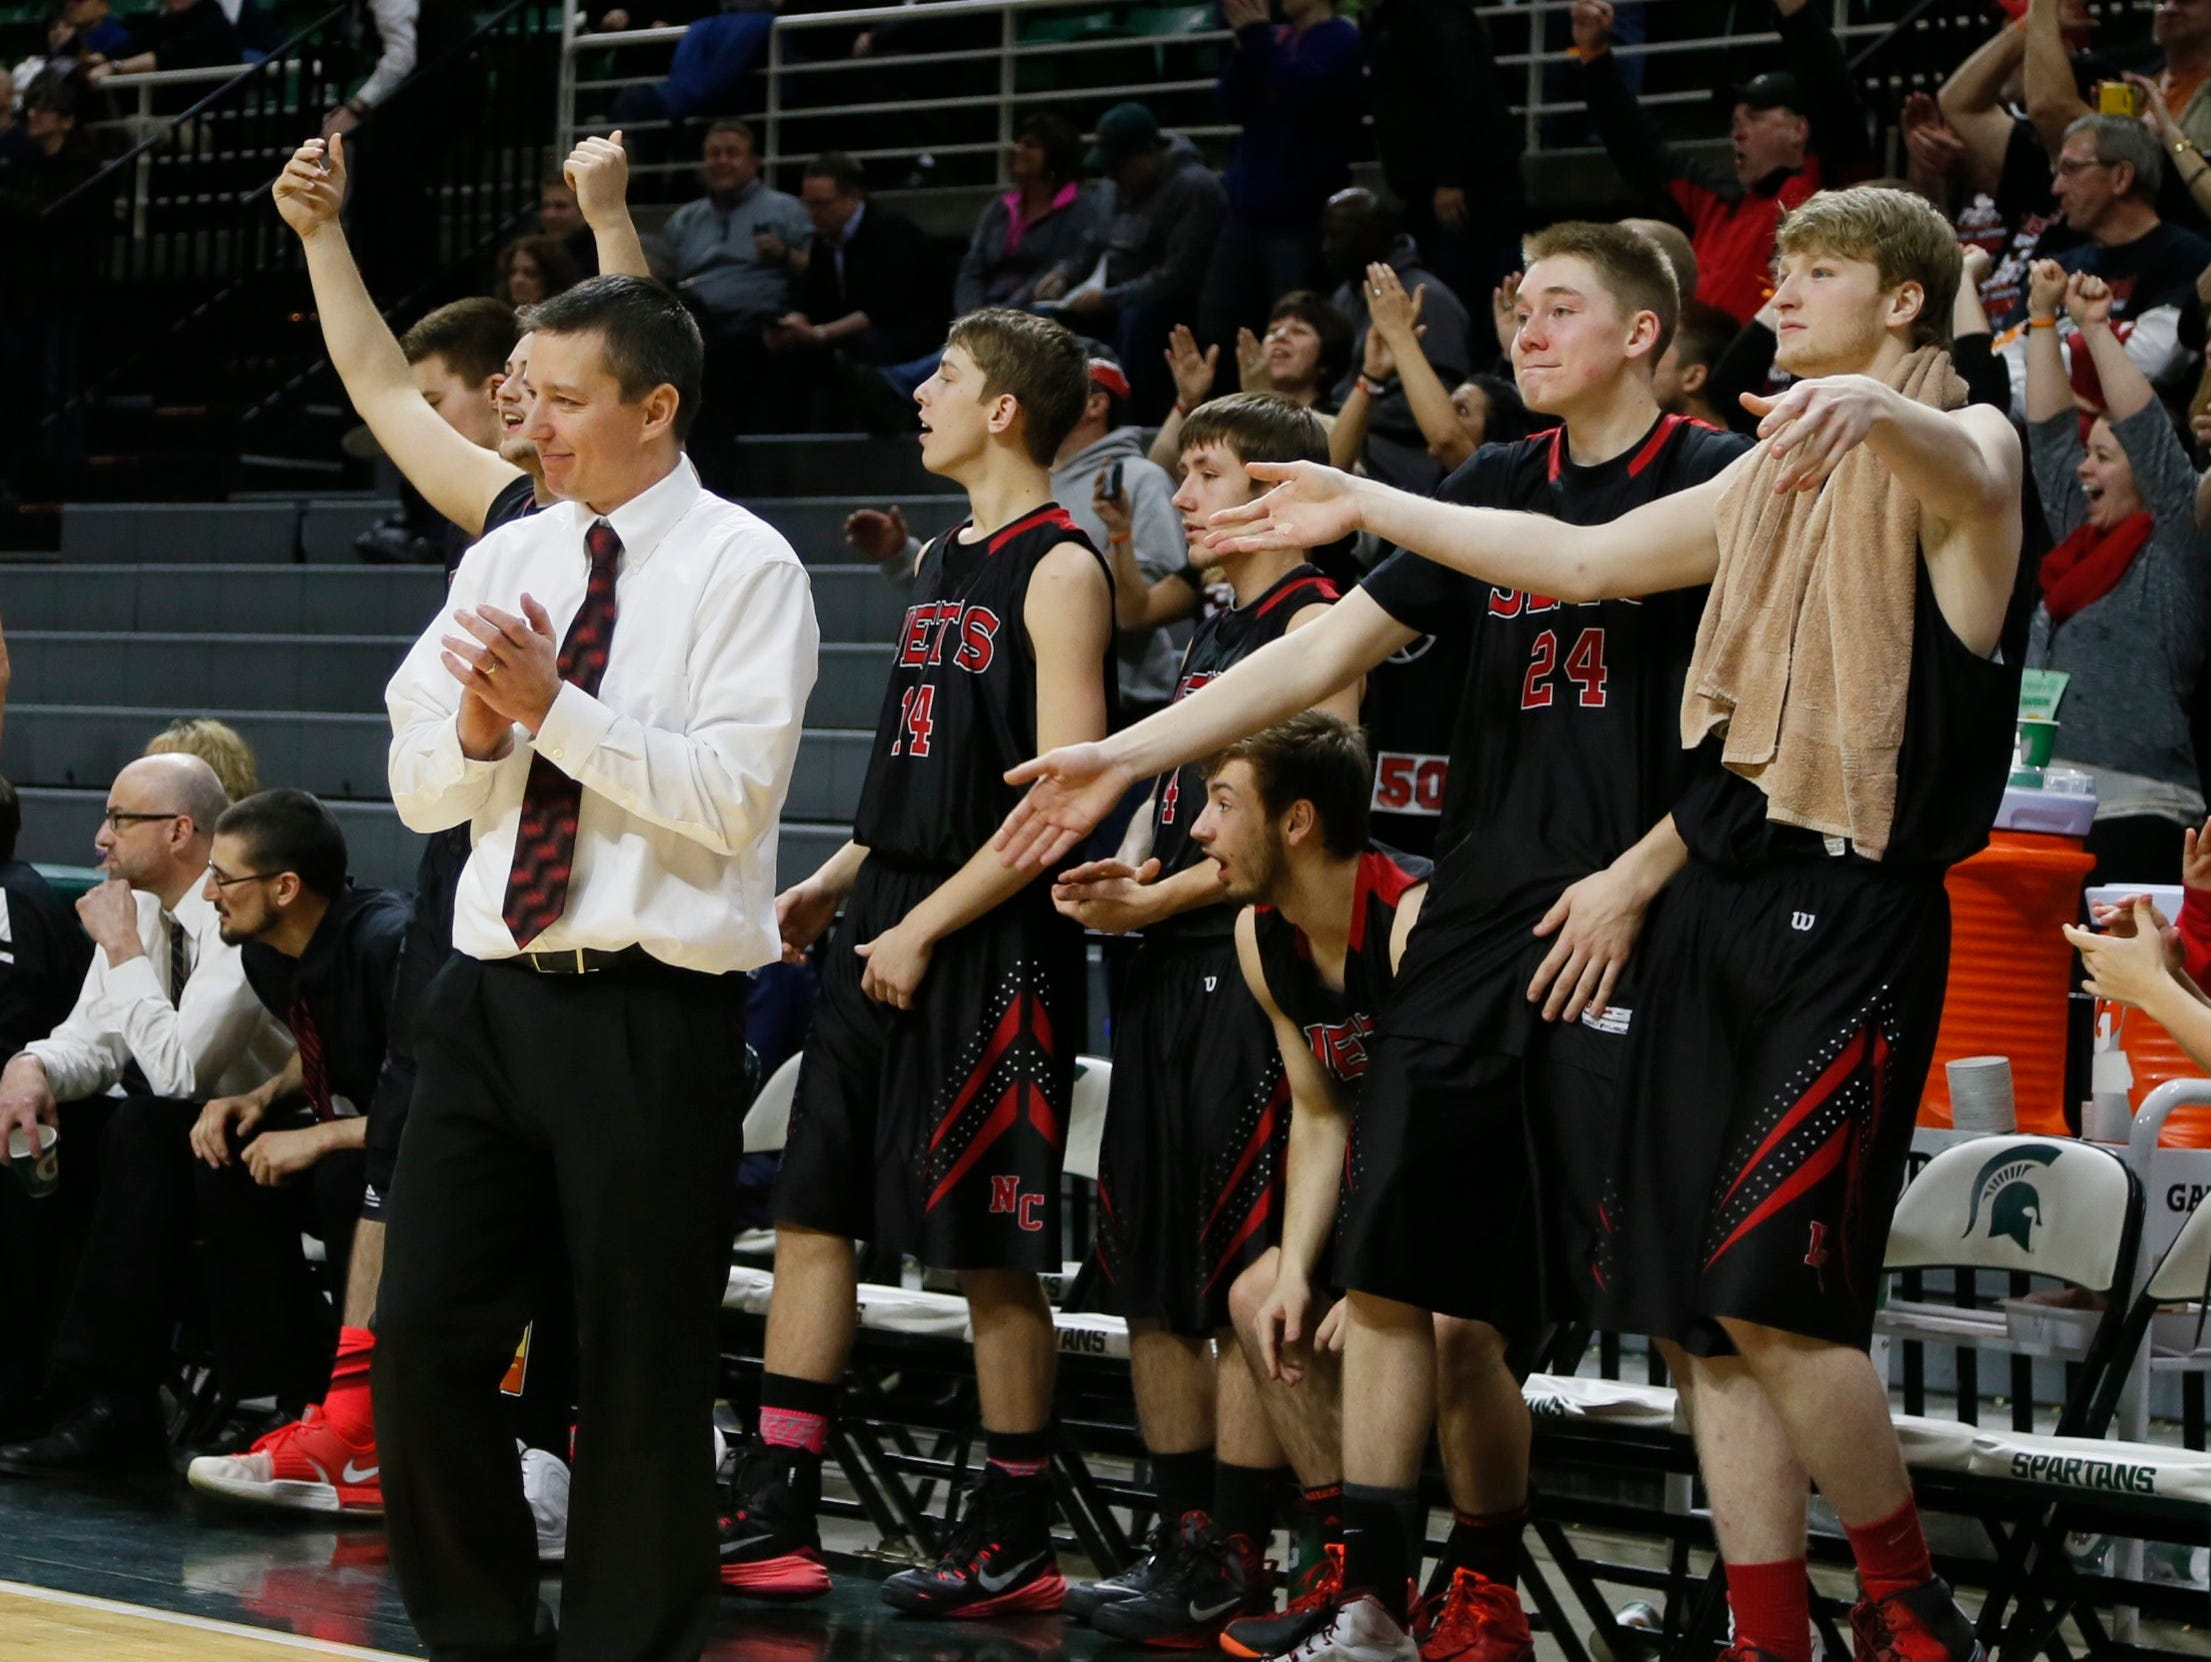 Powers North Central head coach Adam Mercier and players start to celibate as the last seconds dun out on their 71-46 win over Fulton-Middleton in MHSAA Boys Class D semi final basketball game on Thursday, March 26, 2015 in East Lansing.